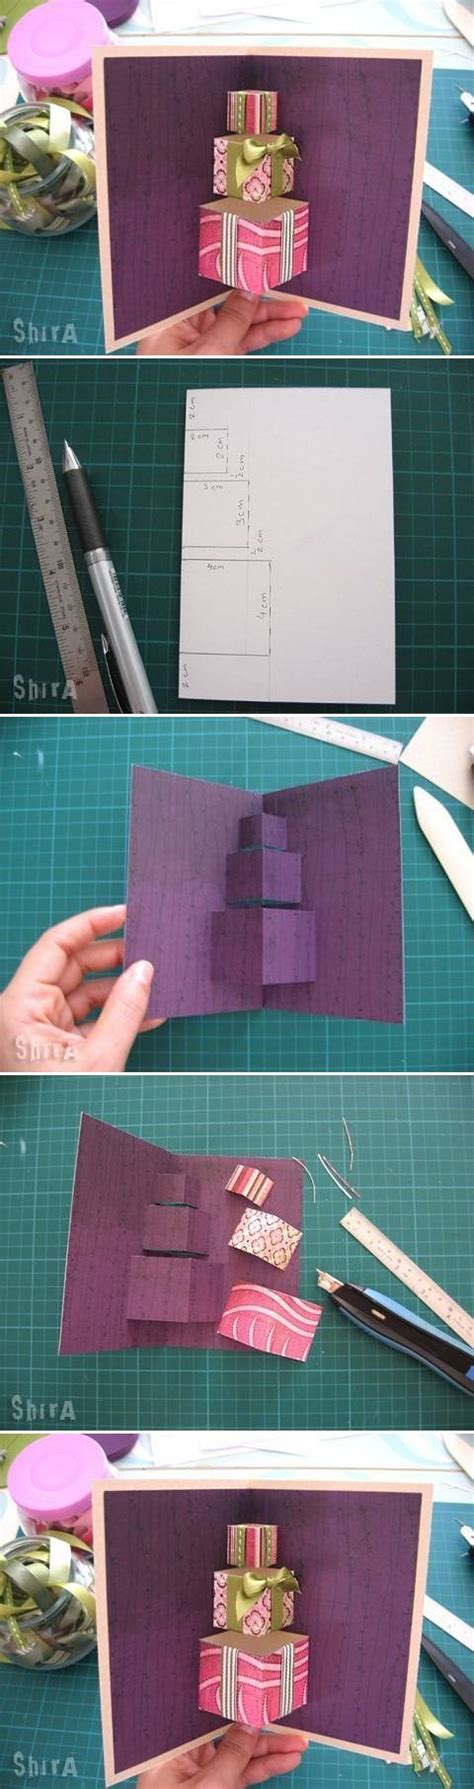 make gift card how to make simple 3d gift card step by step diy tutorial